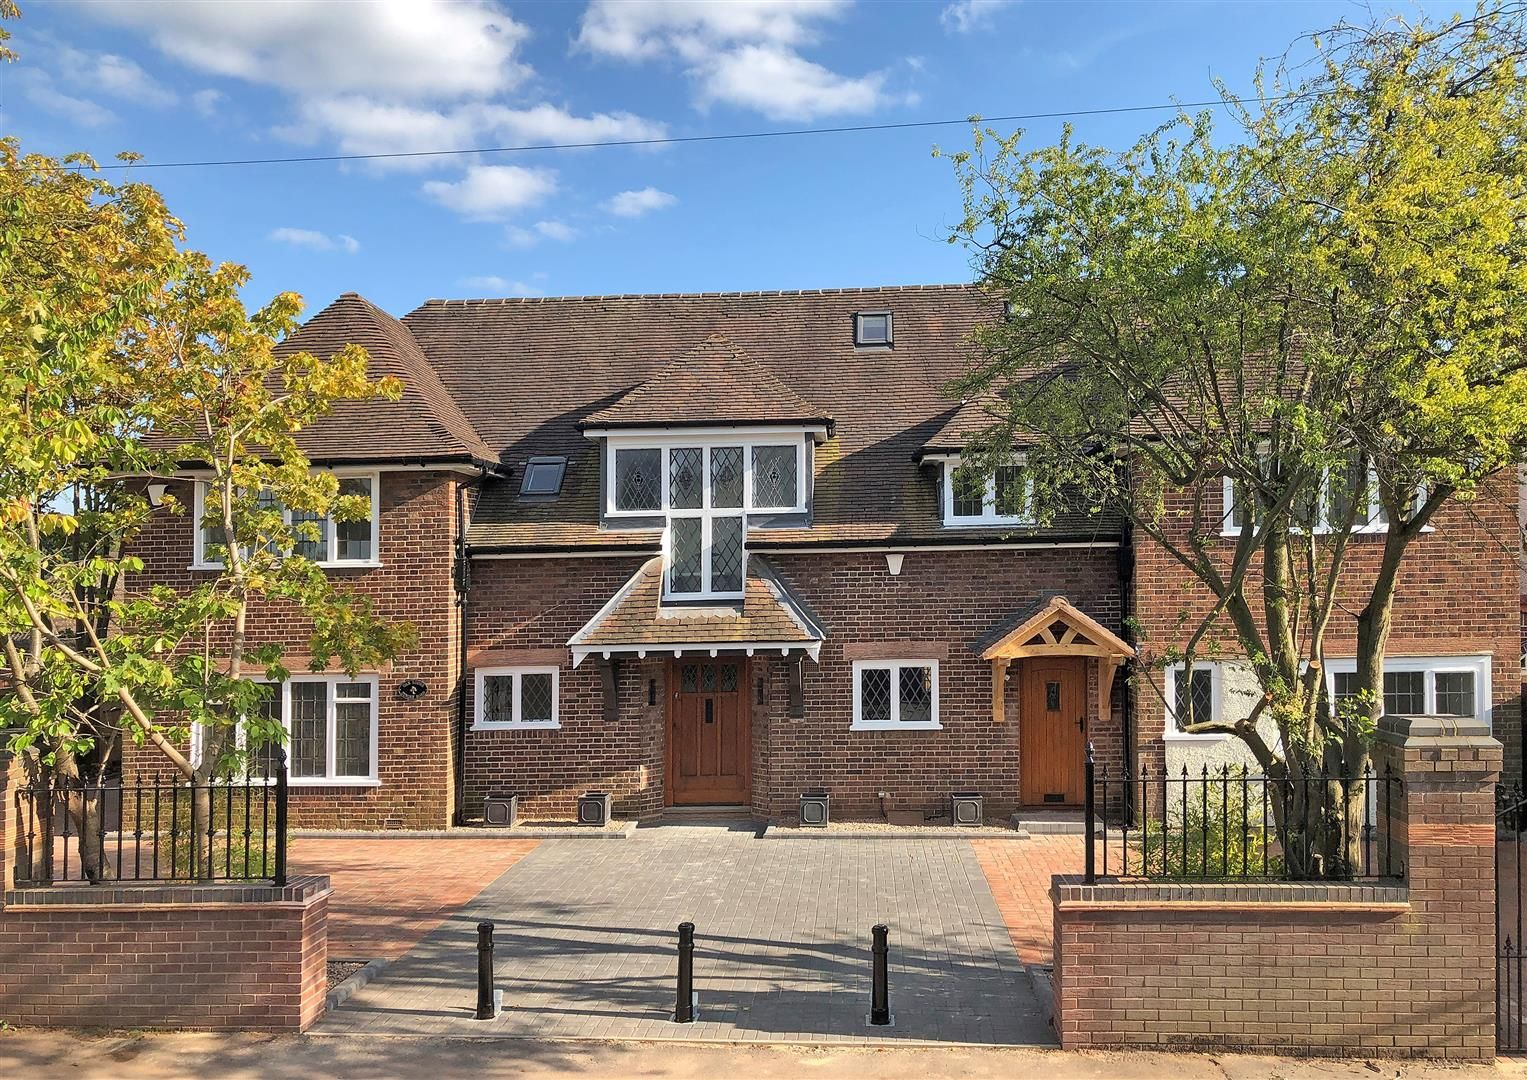 3 bed town-house for sale, DY9